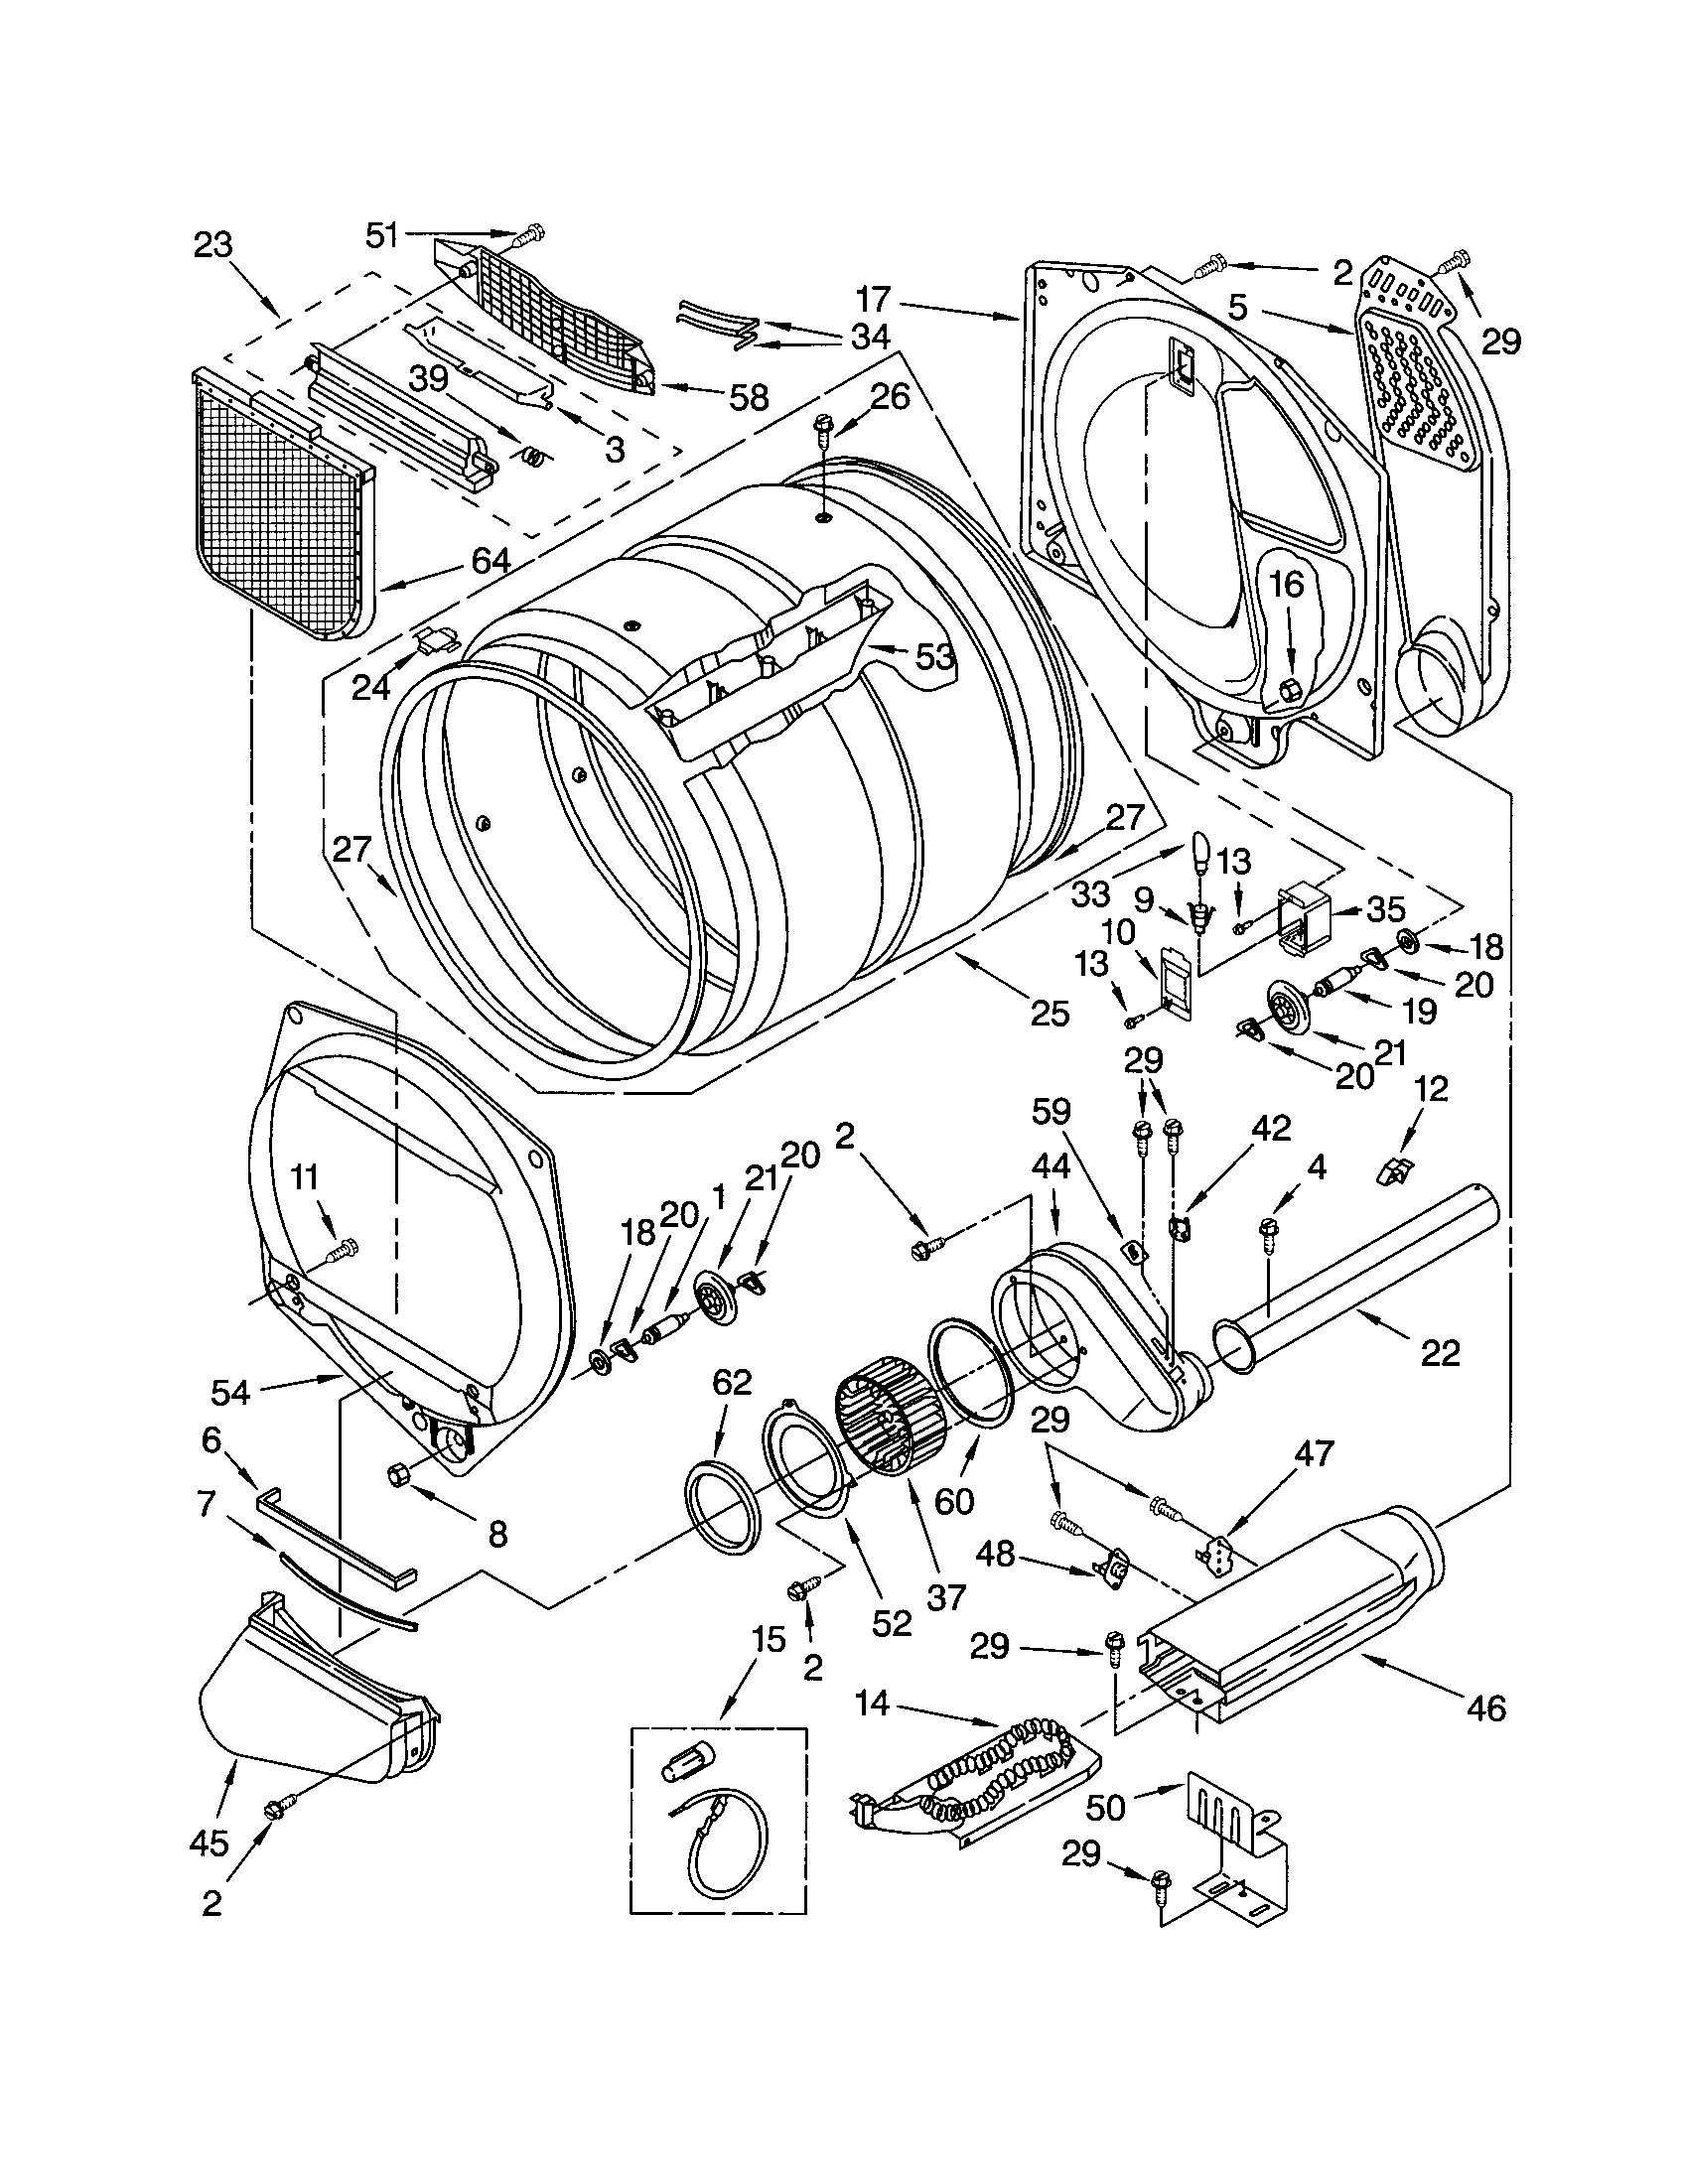 BULKHEAD Diagram & Parts List for Model 11062082101